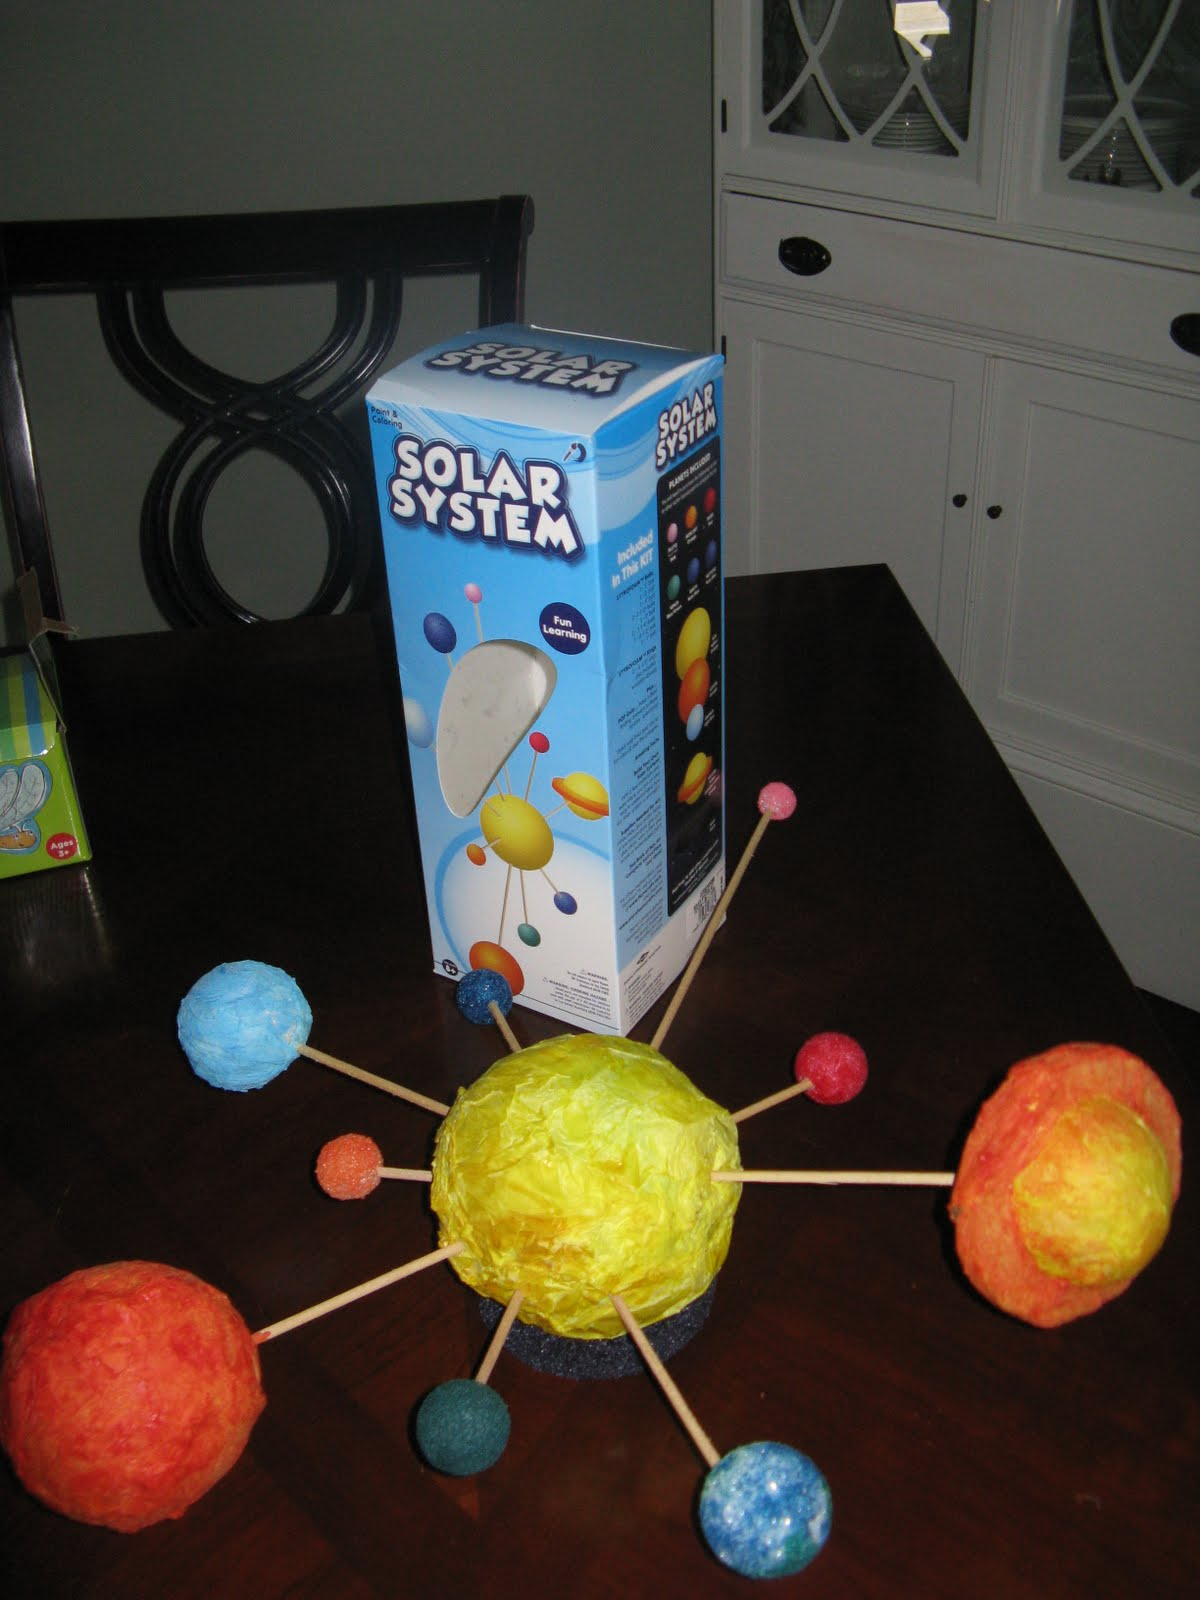 solar system project ideas - photo #22